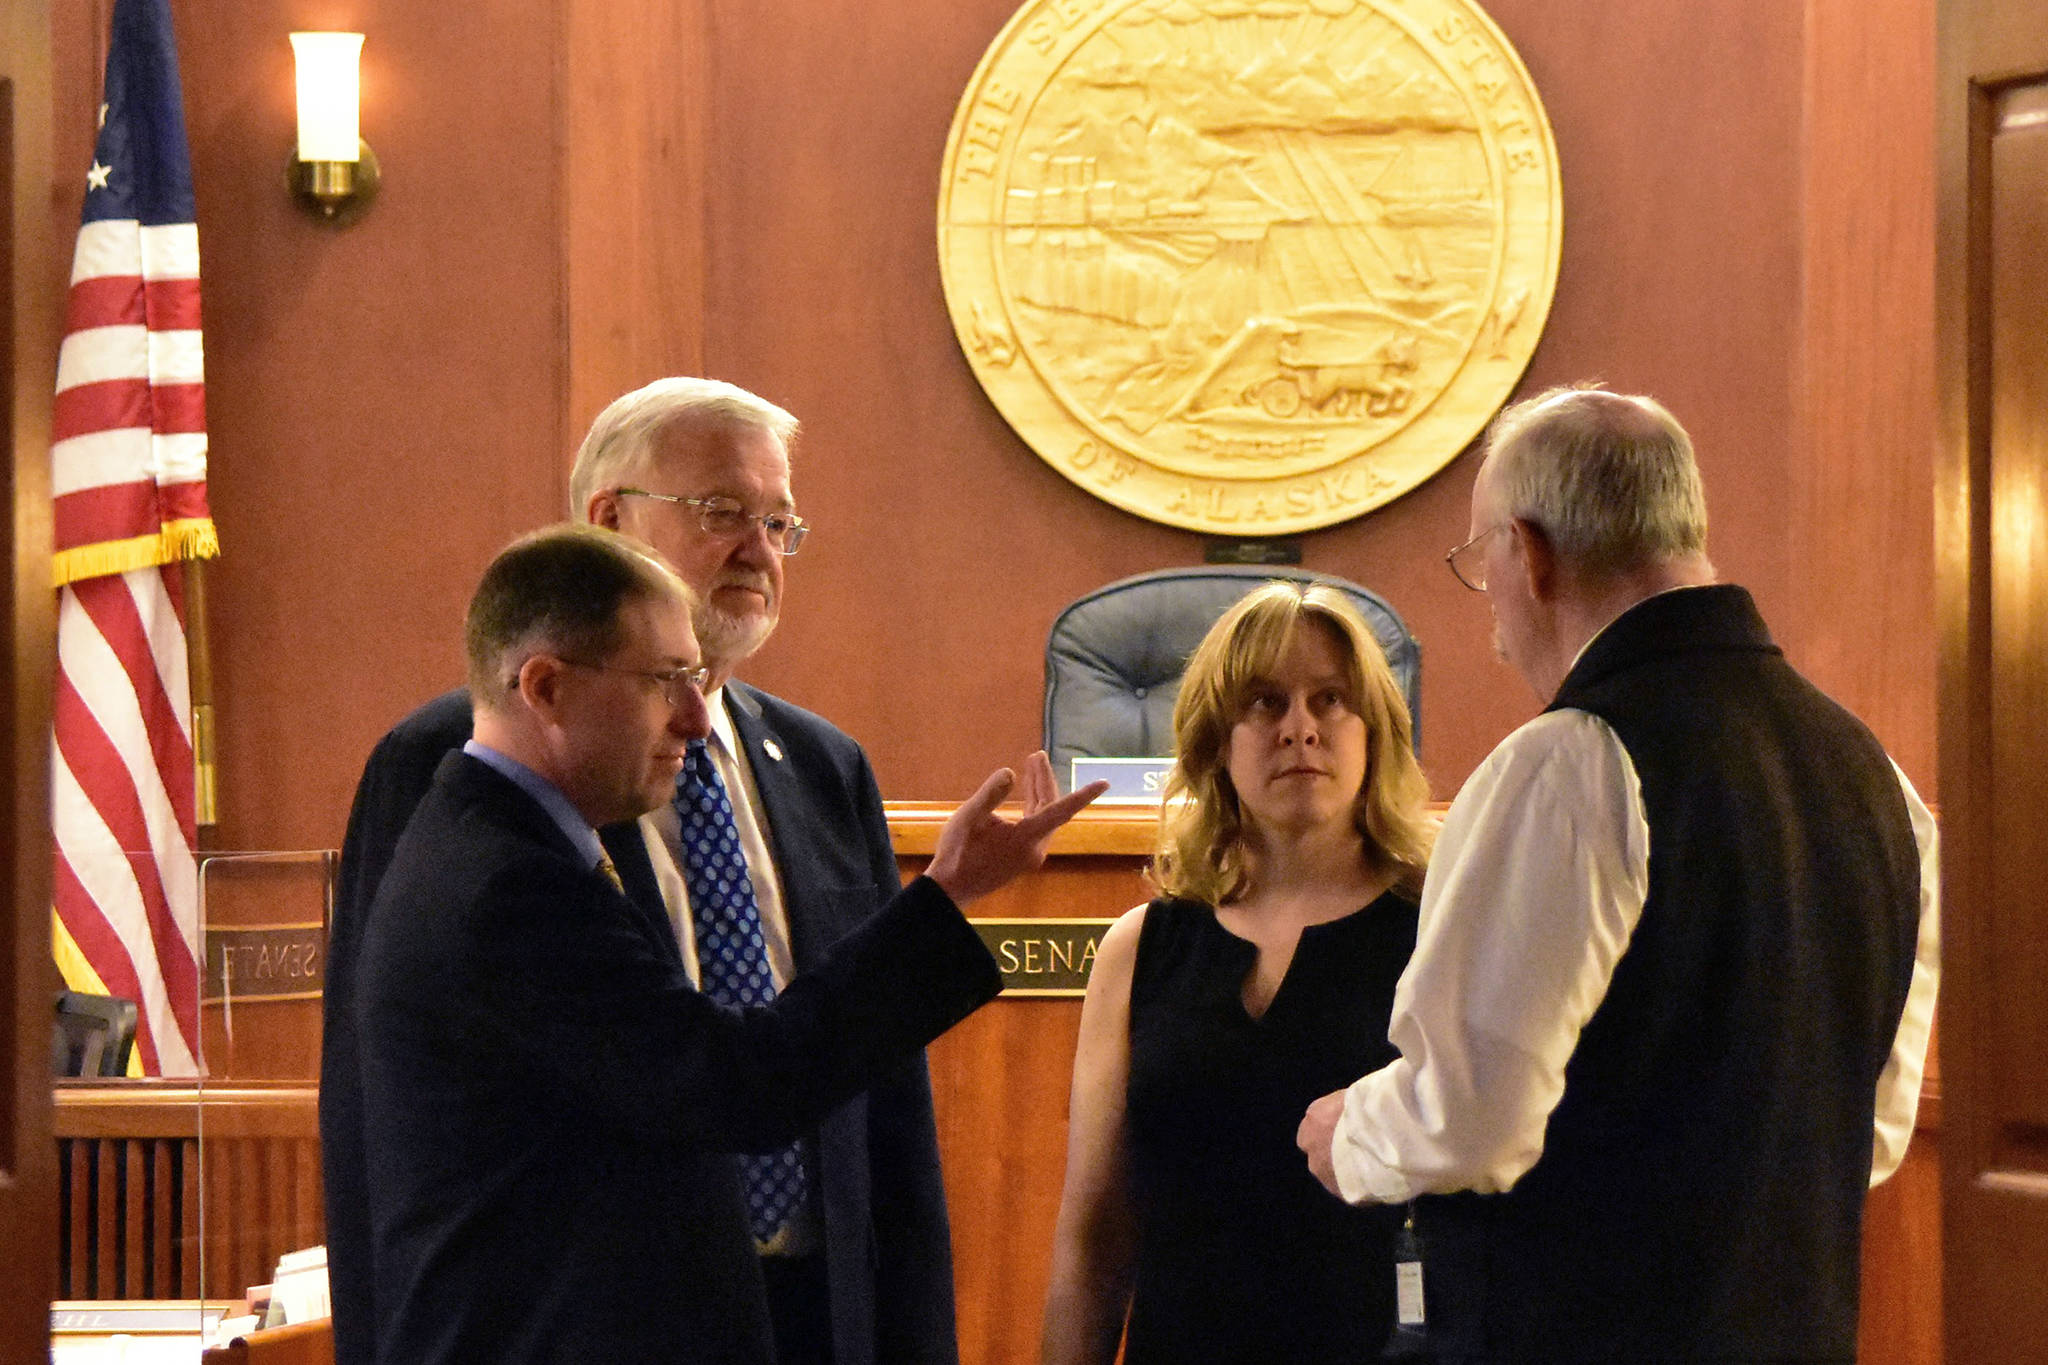 From left to right: Sens. Jesse Kiehl, D-Juneau; Gary Stevens, R-Kodiak; Mia Costello, R-Anchorage, and Bert Stedman, R-Sitka, speak on the floor of the Alaska Senate on Monday, May 24, 2021, the first day of one of two special sessions called by Gov. Mike Dunleavy. (Peter Segall / Juneau Empire)